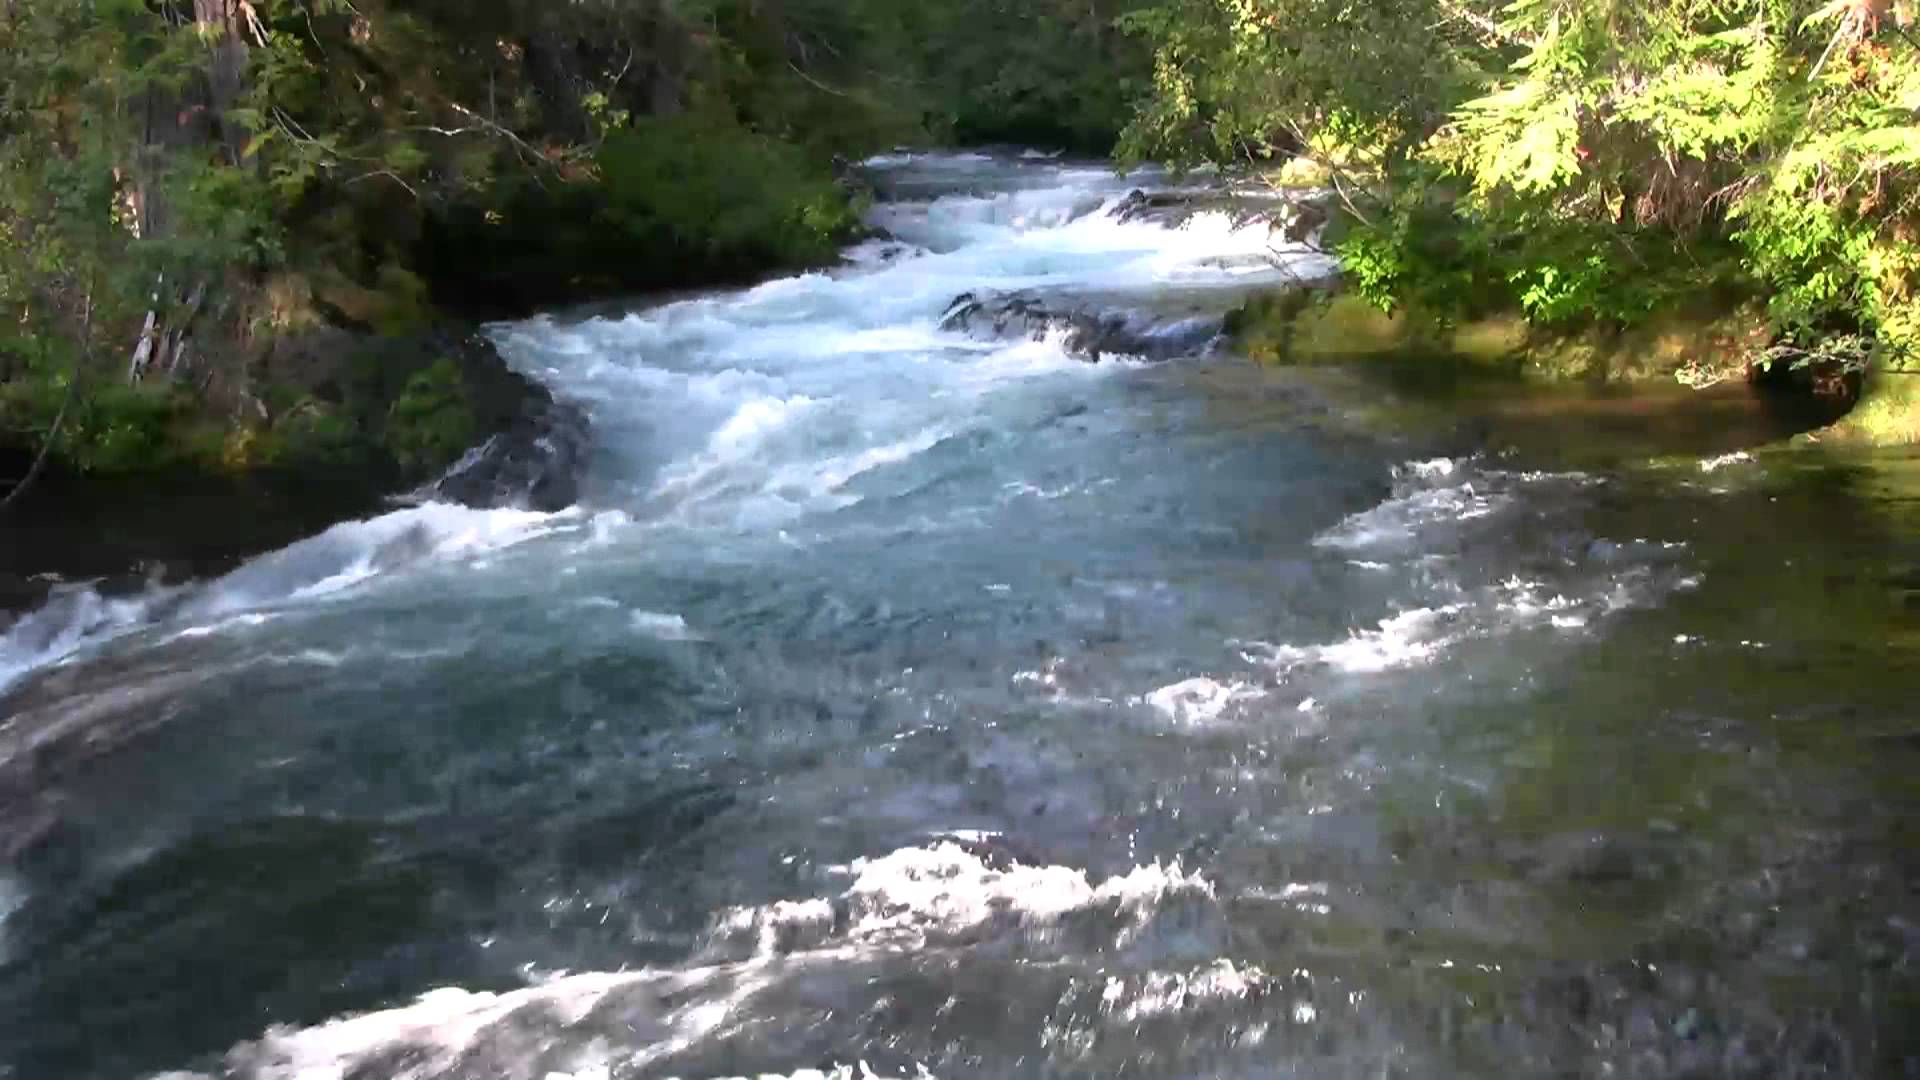 Very Relaxing 3 Hour Video of a Mountain Stream - YouTube